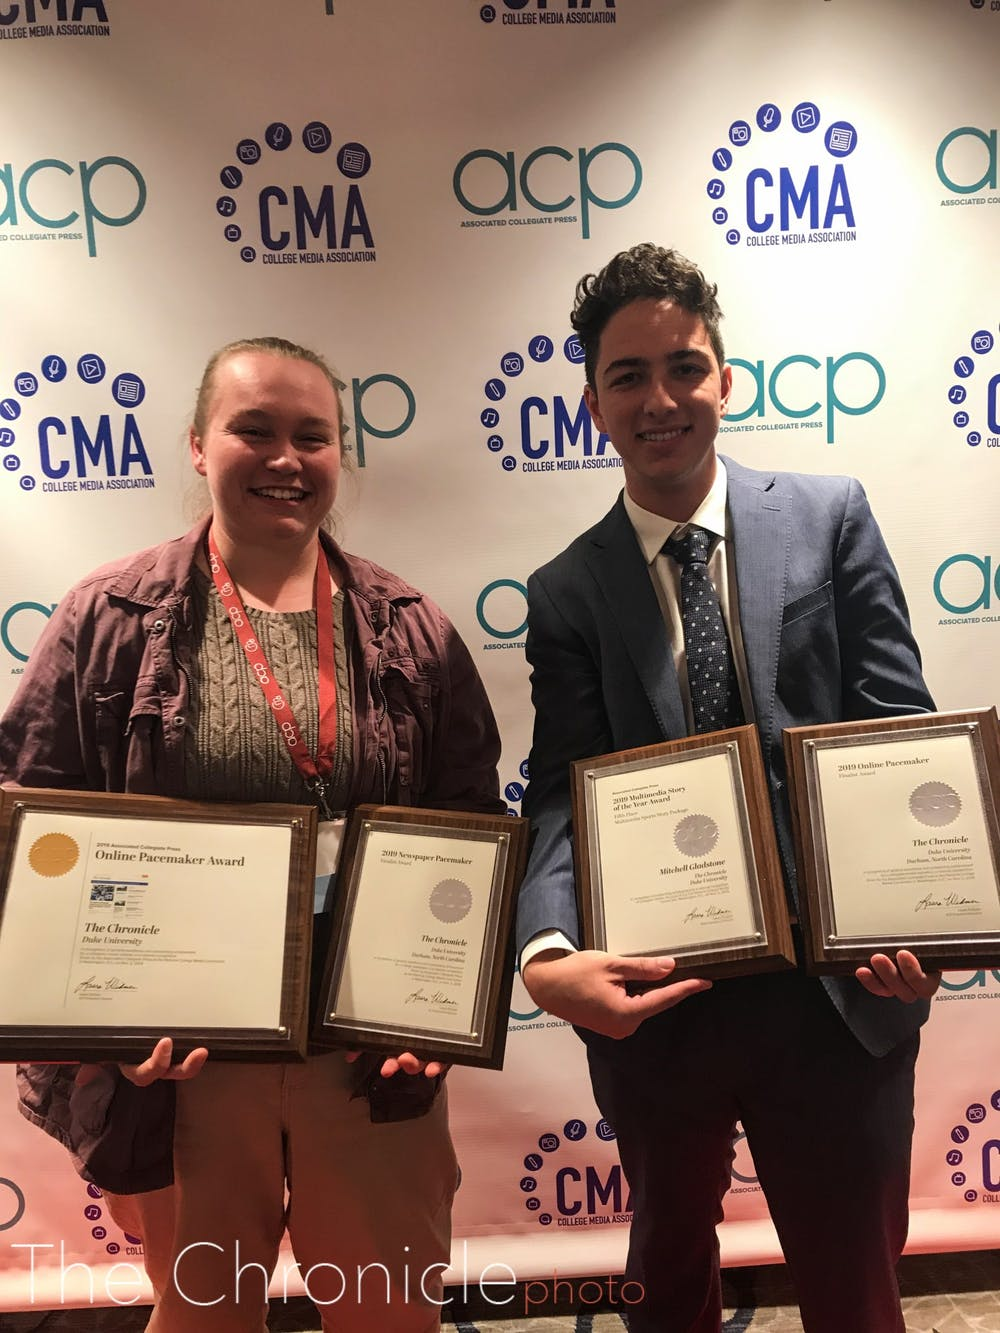 <p>Vol. 114 Editor Bre Bradham and Vol. 114 Managing Editor Ben Leonard with the plaques from the ACP conference.</p>